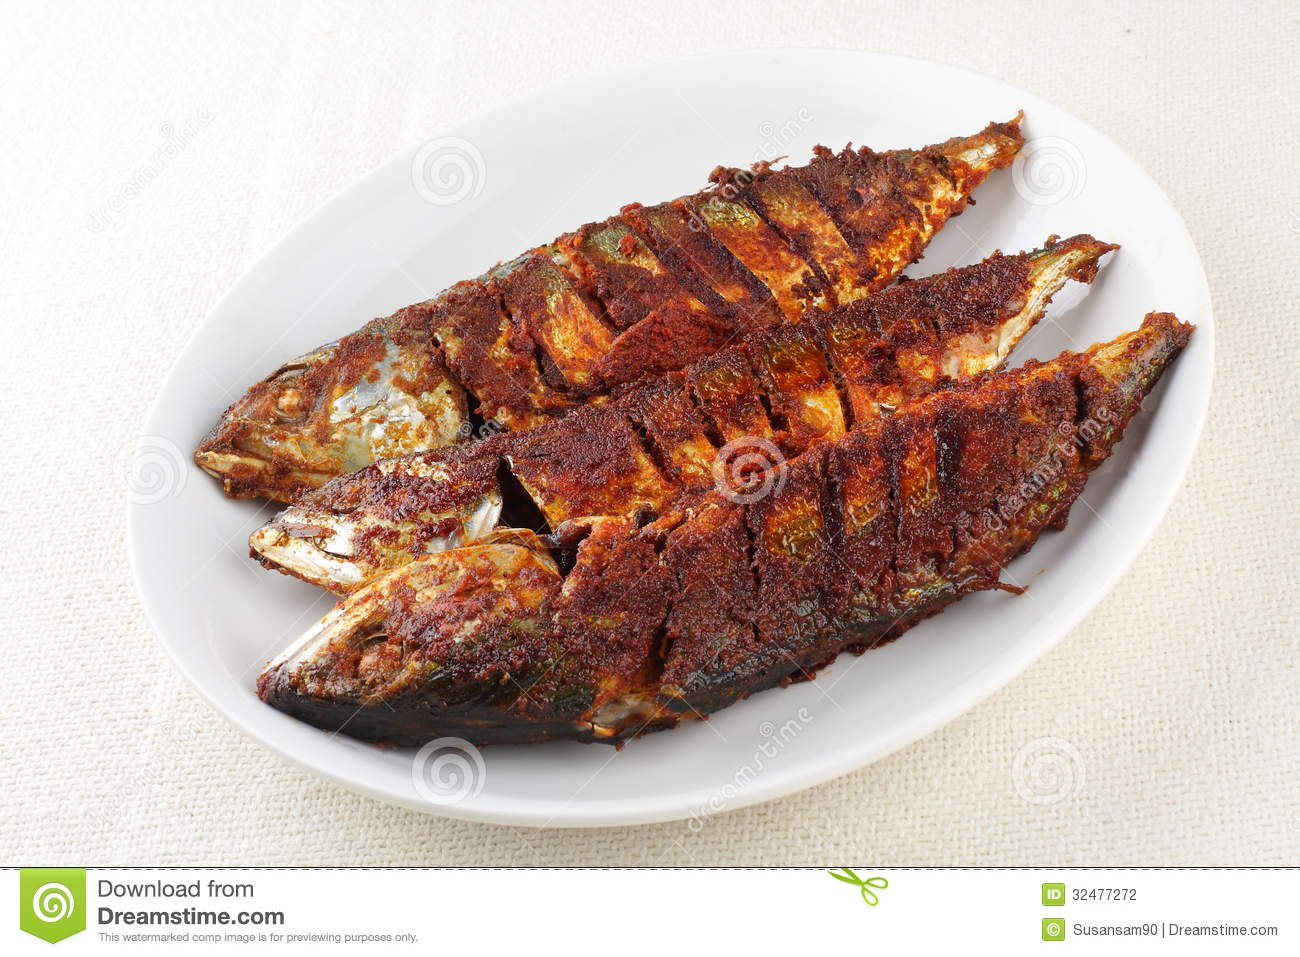 Indian cusine mackerel deep fry.